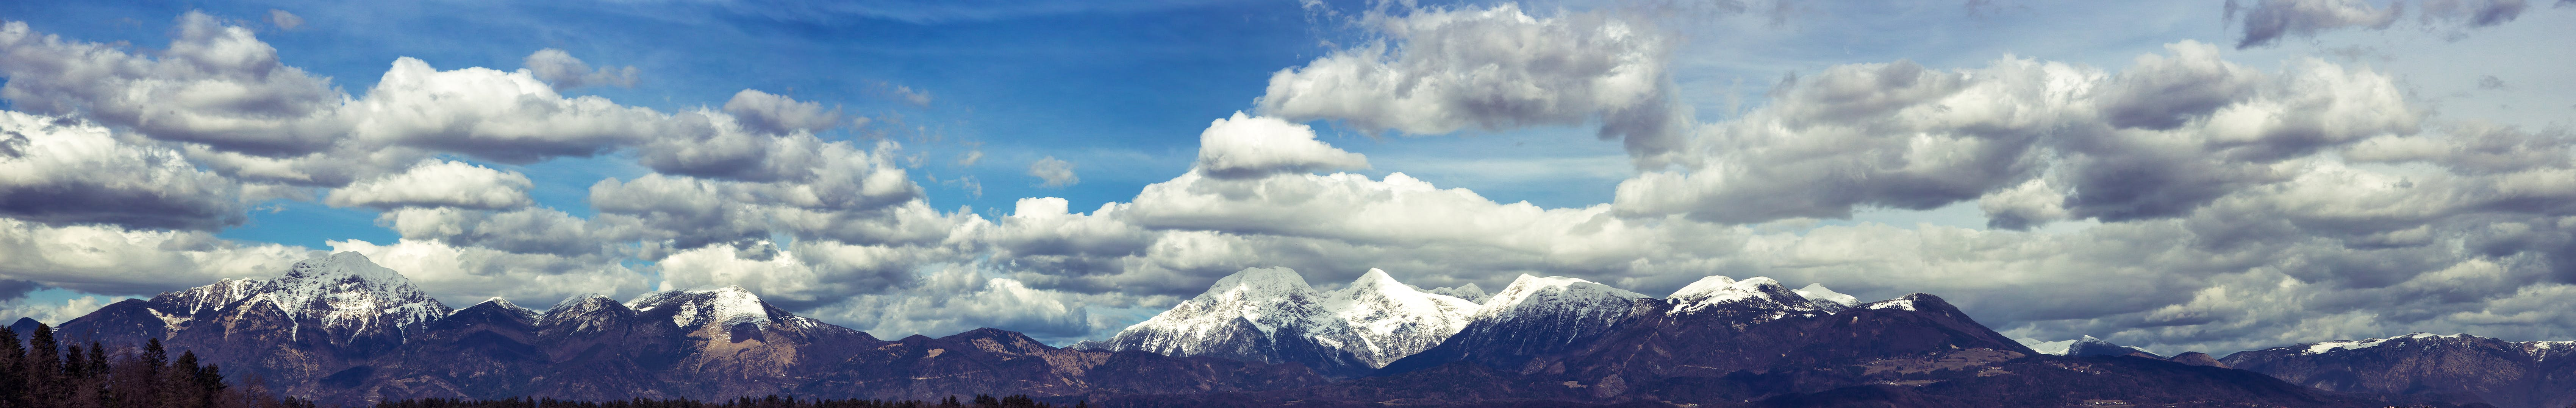 Free stock photo of clouds, mountains, nature, sky